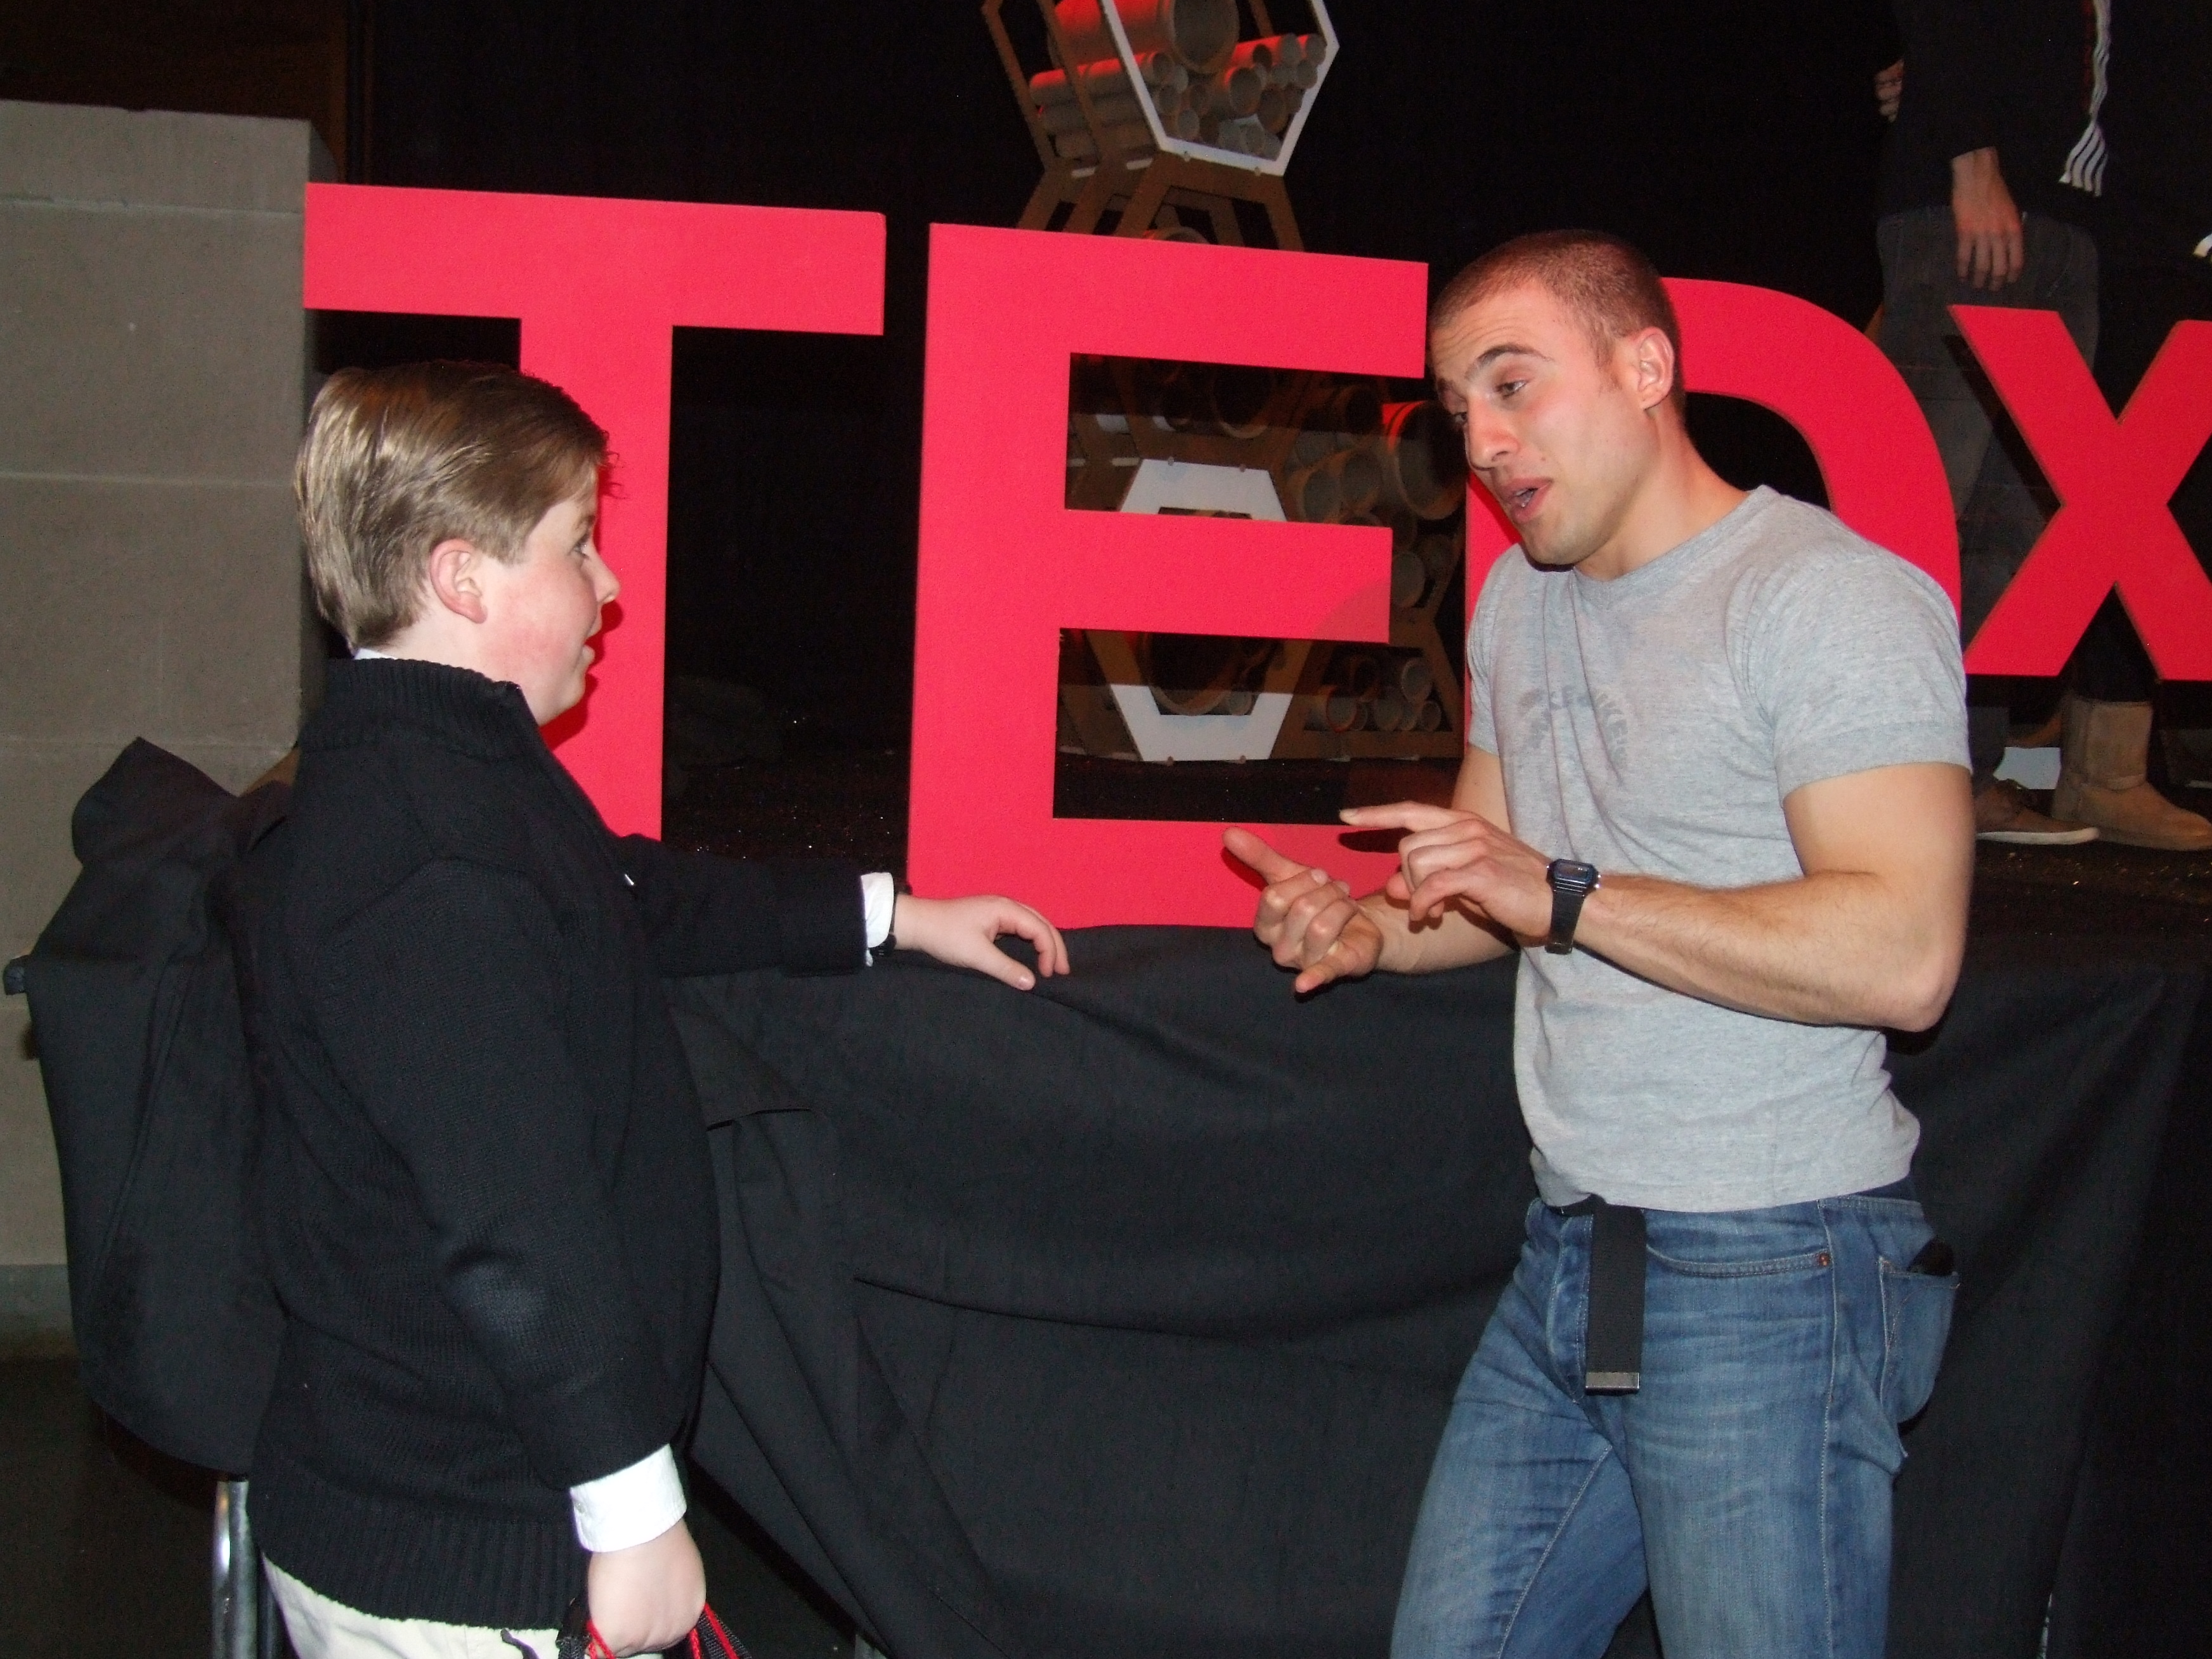 Chris Bashinelli talking with a young man at TEDx (Wake Forest Univ, NC)